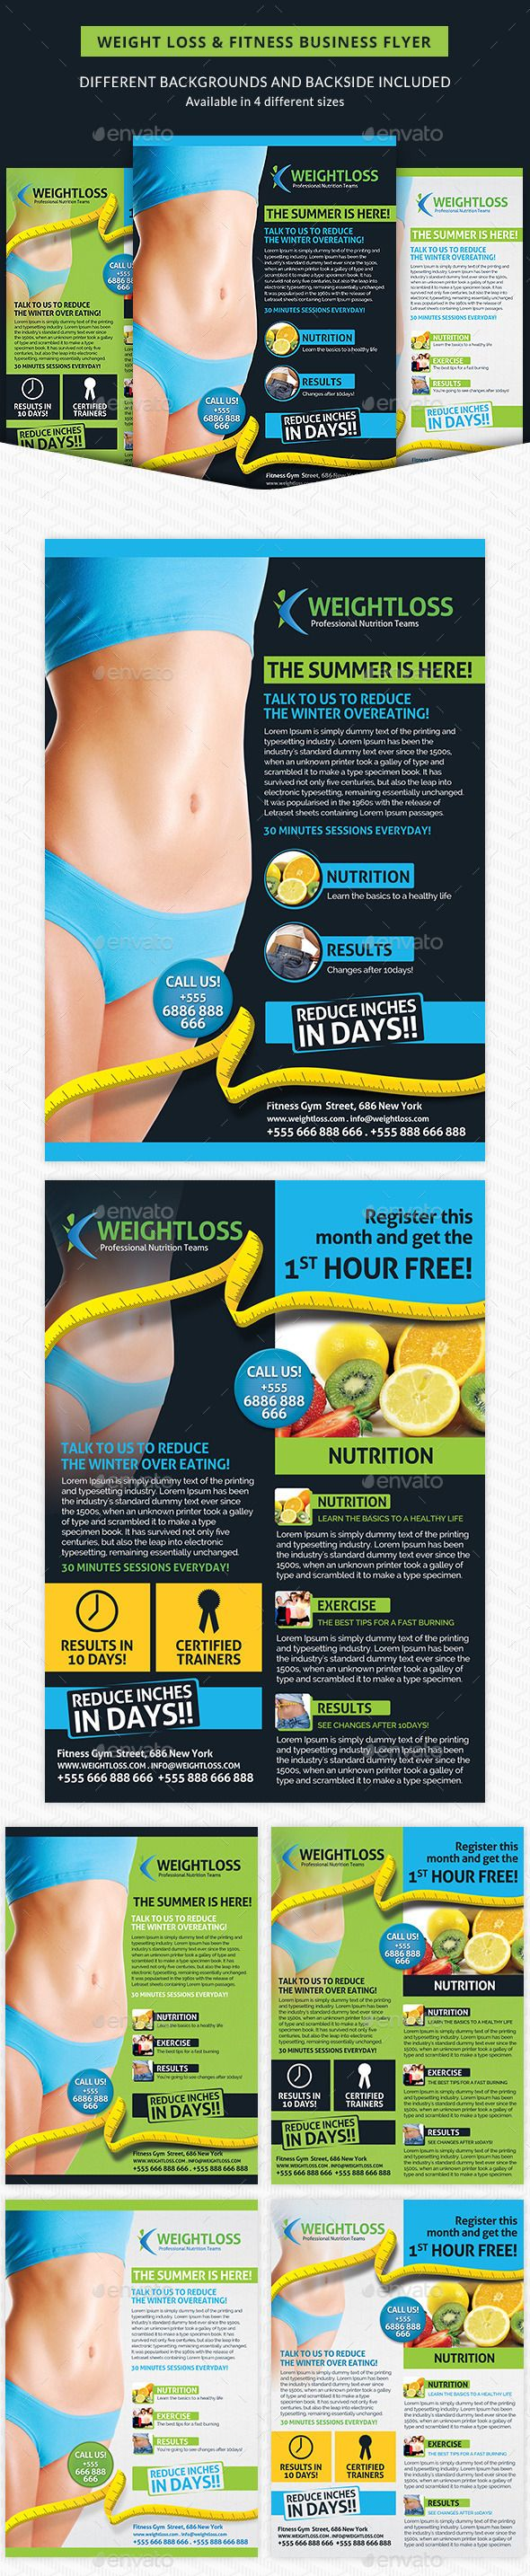 weight loss fitness business flyer business flyers business and